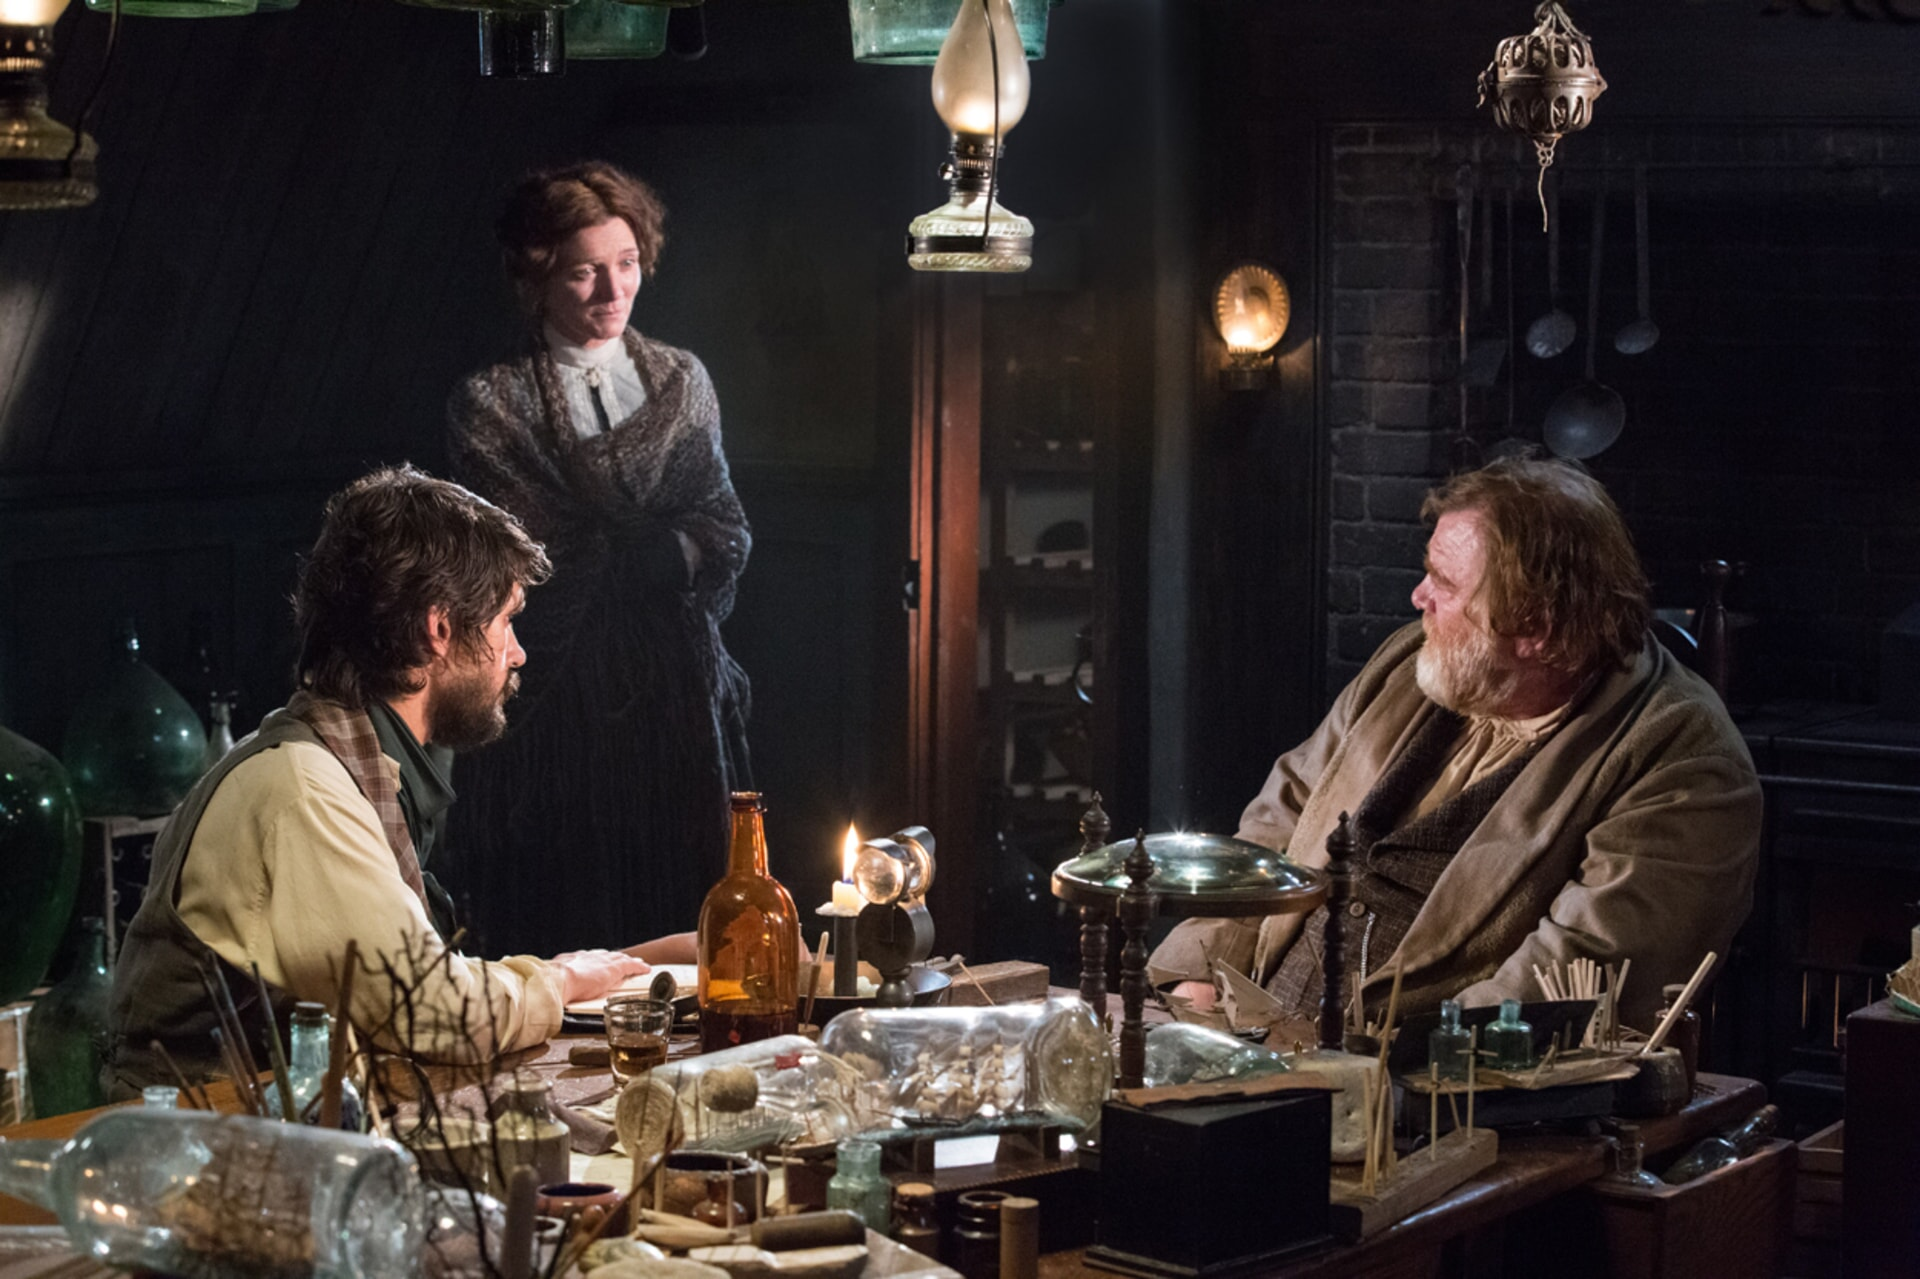 "BEN WHISHAW as Herman Melville, MICHELLE FAIRLEY as Mrs. Nickerson and BRENDAN GLEESON as Tom Nickerson in Warner Bros. Pictures' and Village Roadshow Pictures' action adventure ""IN THE HEART OF THE SEA,"" distributed worldwide by Warner Bros. Pictures and in select territories by Village Roadshow Pictures."